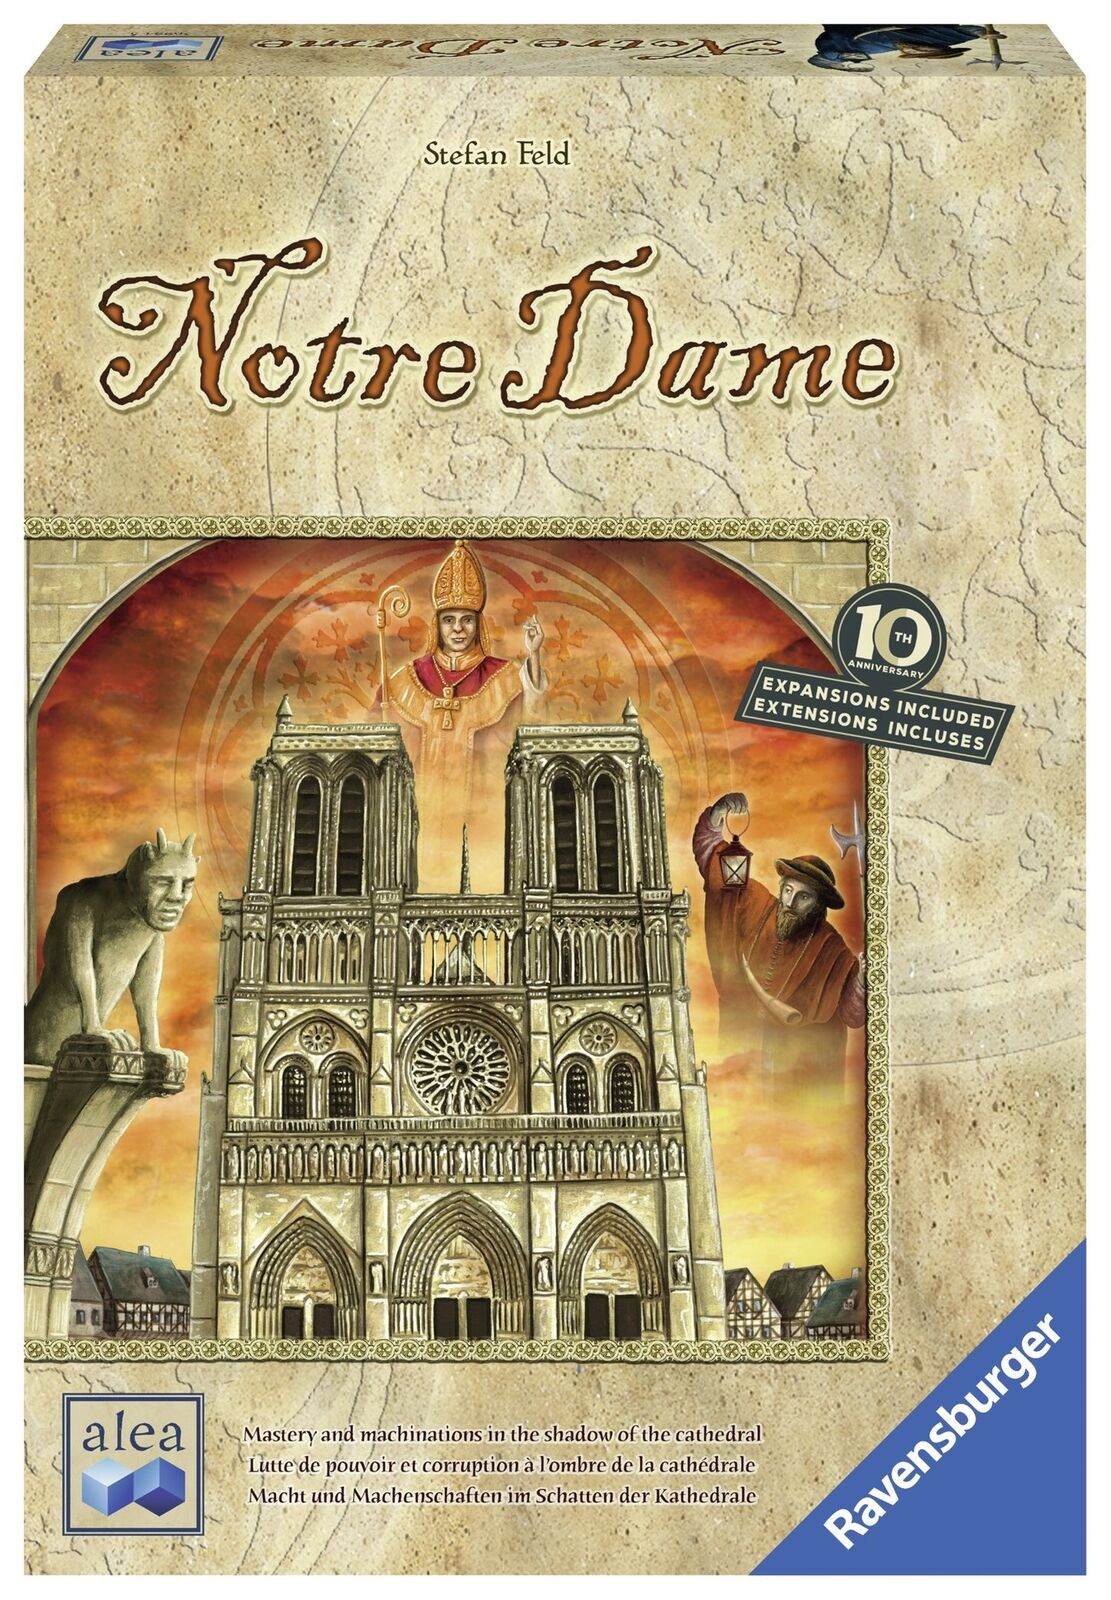 Ravensburger 26994 Notre Dame: 10th Anniversario EDITION Gioco da tavolo strategia